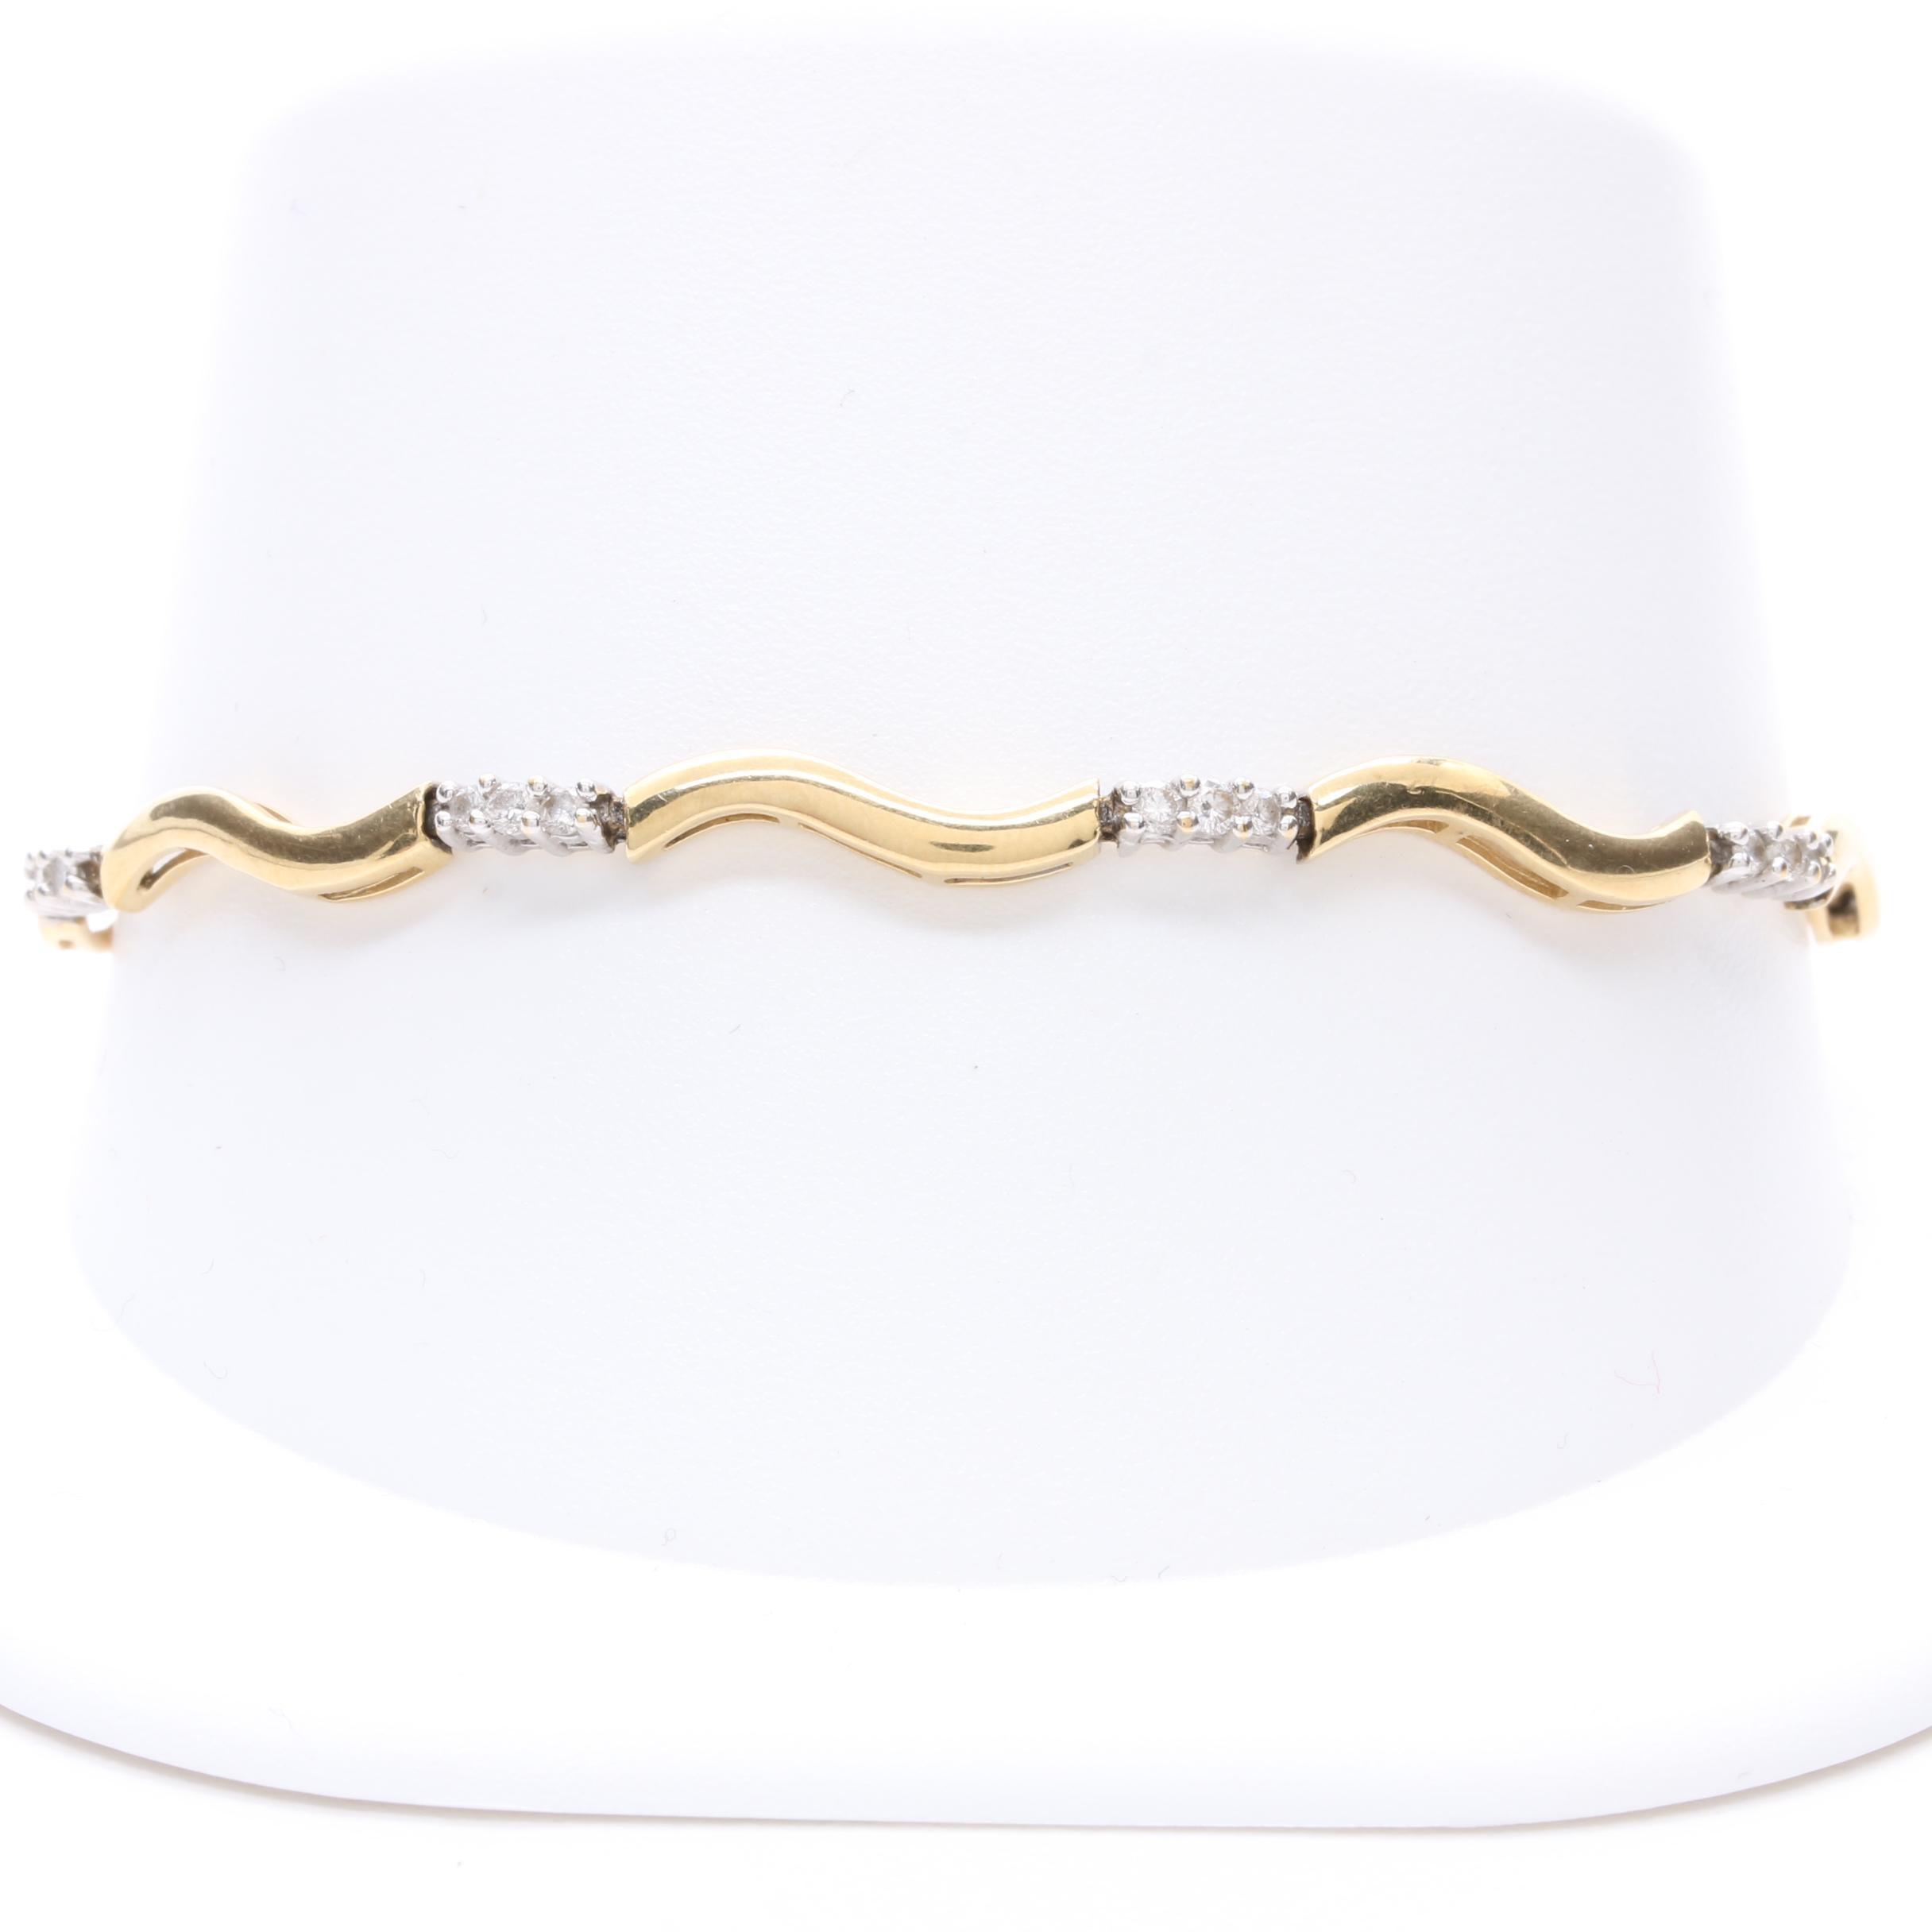 10K and 14K Yellow Gold and Diamond Tennis Bracelet